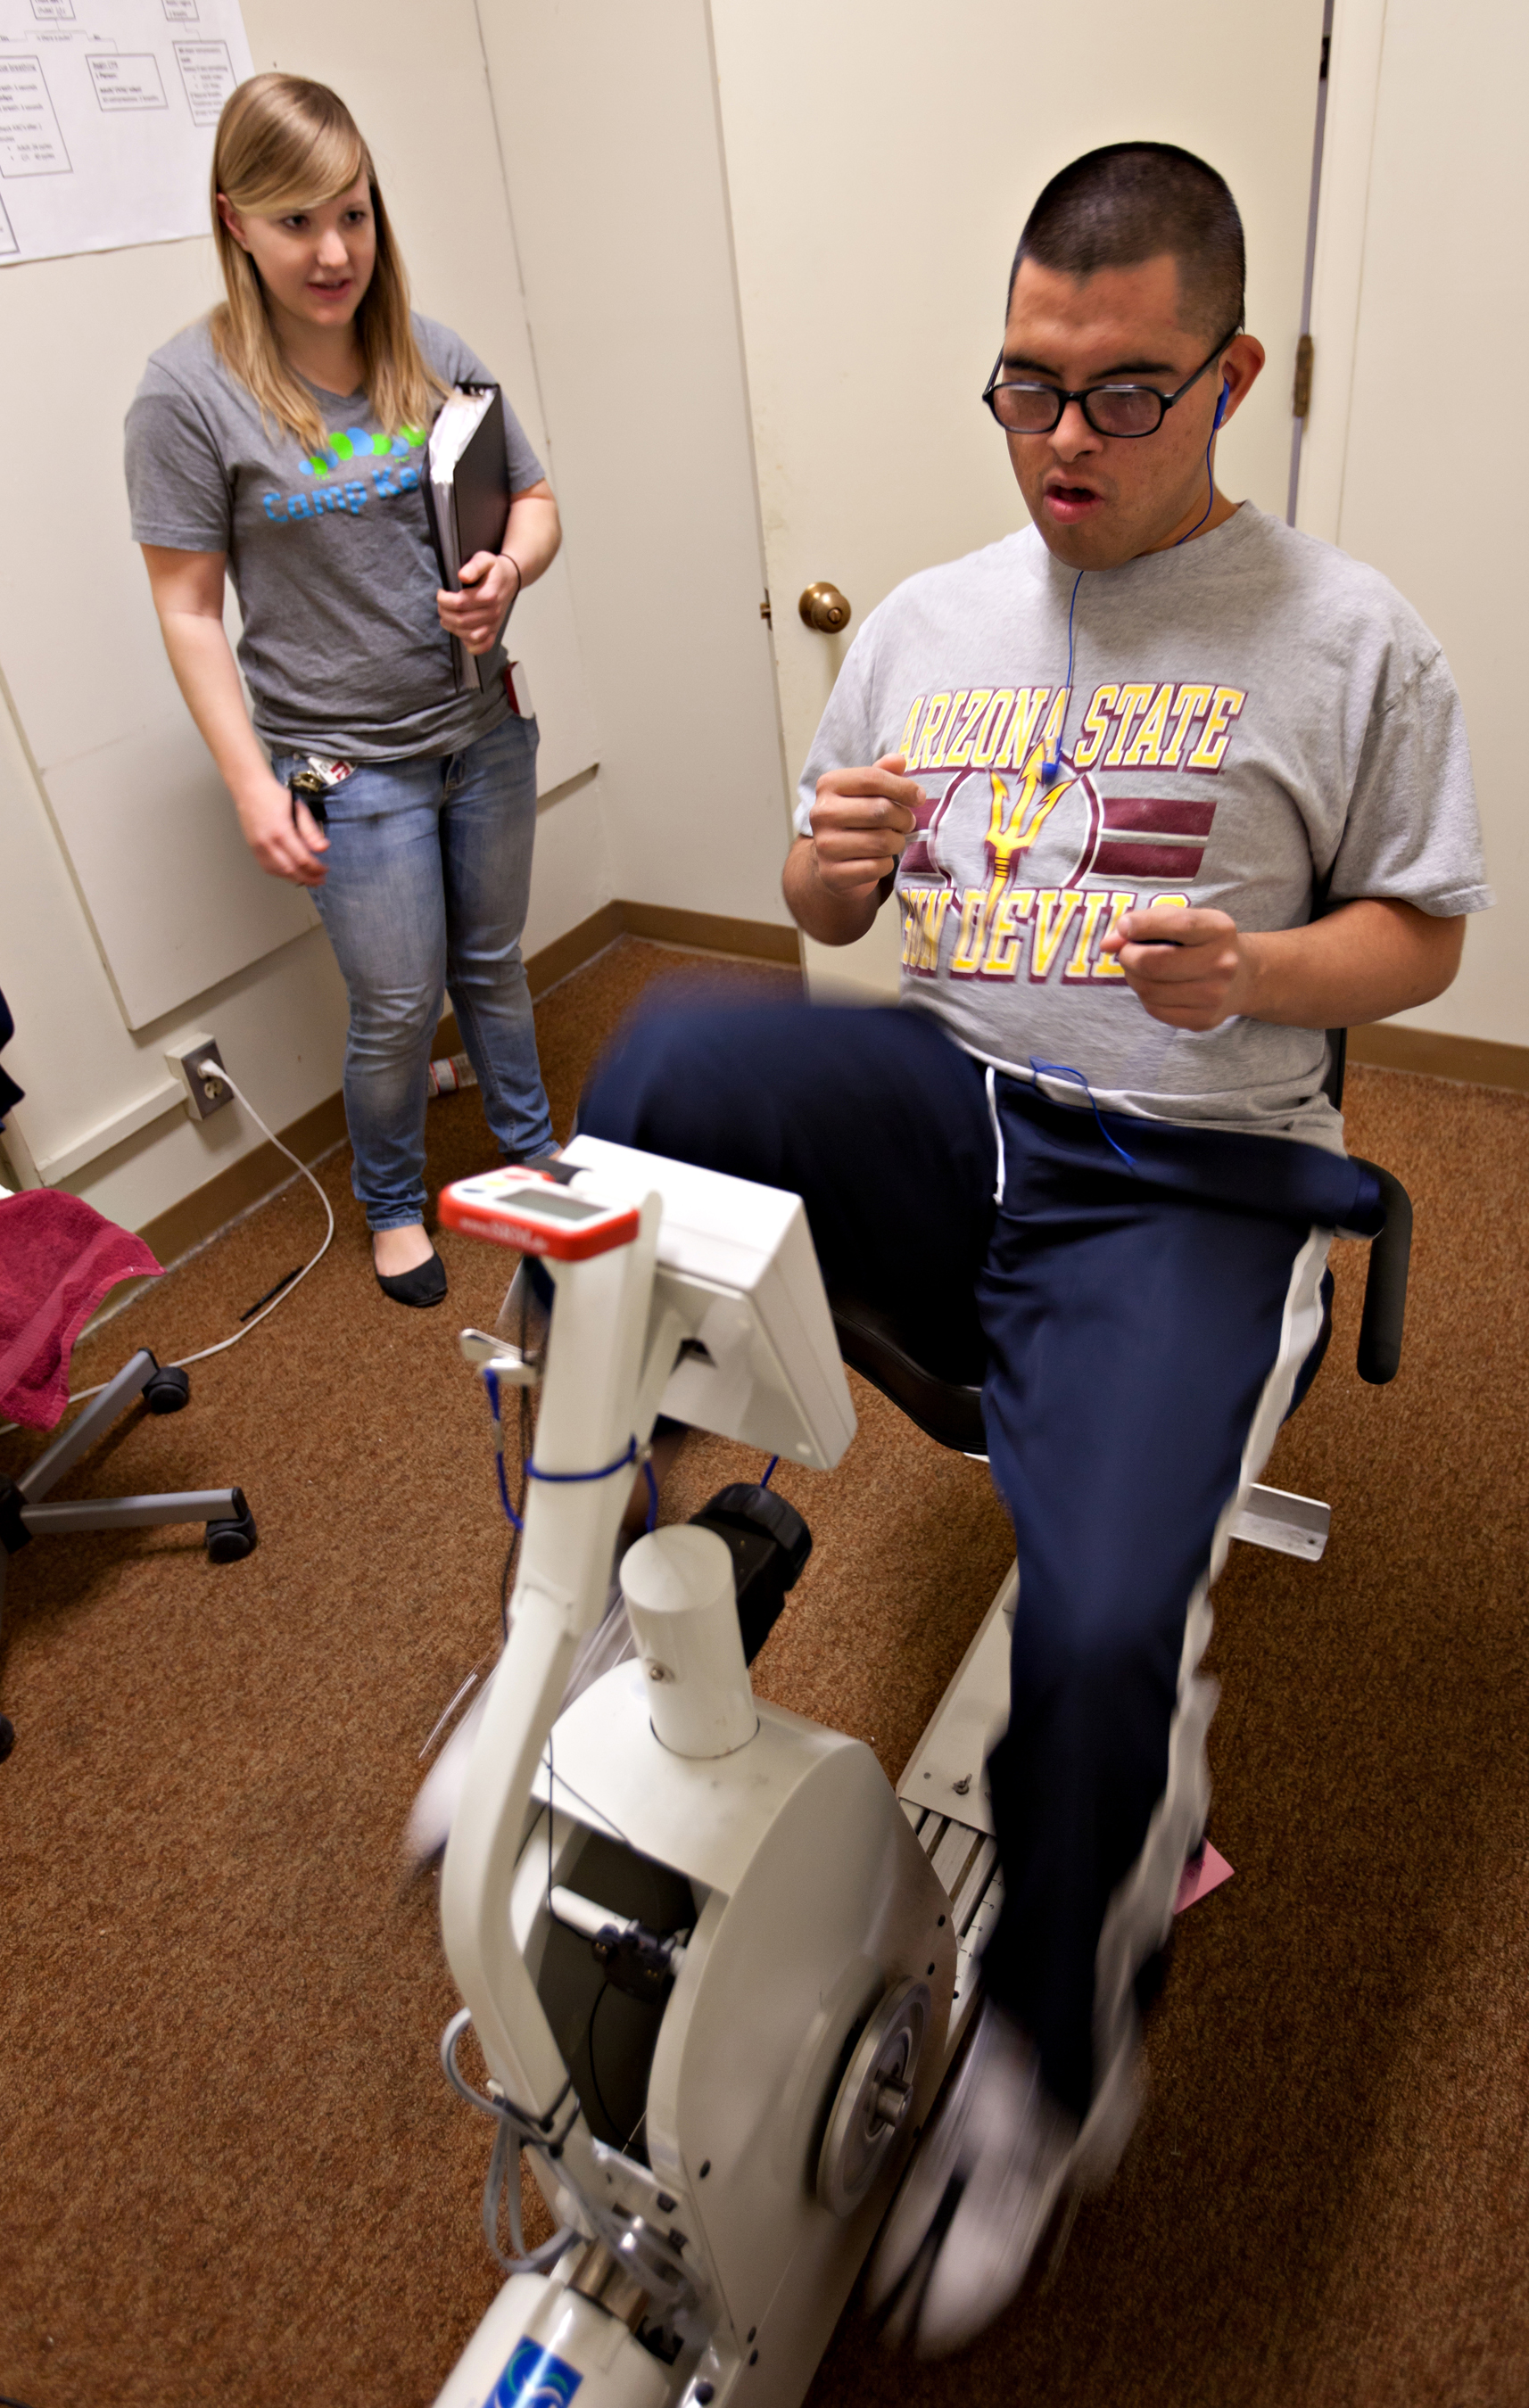 Down syndrome and physical therapy - Marcus Santellan Exercises On A Motorized Bike While Katy Lichtsinn An Asu Kinesiology Senior Encourages Him Credit Tom Story